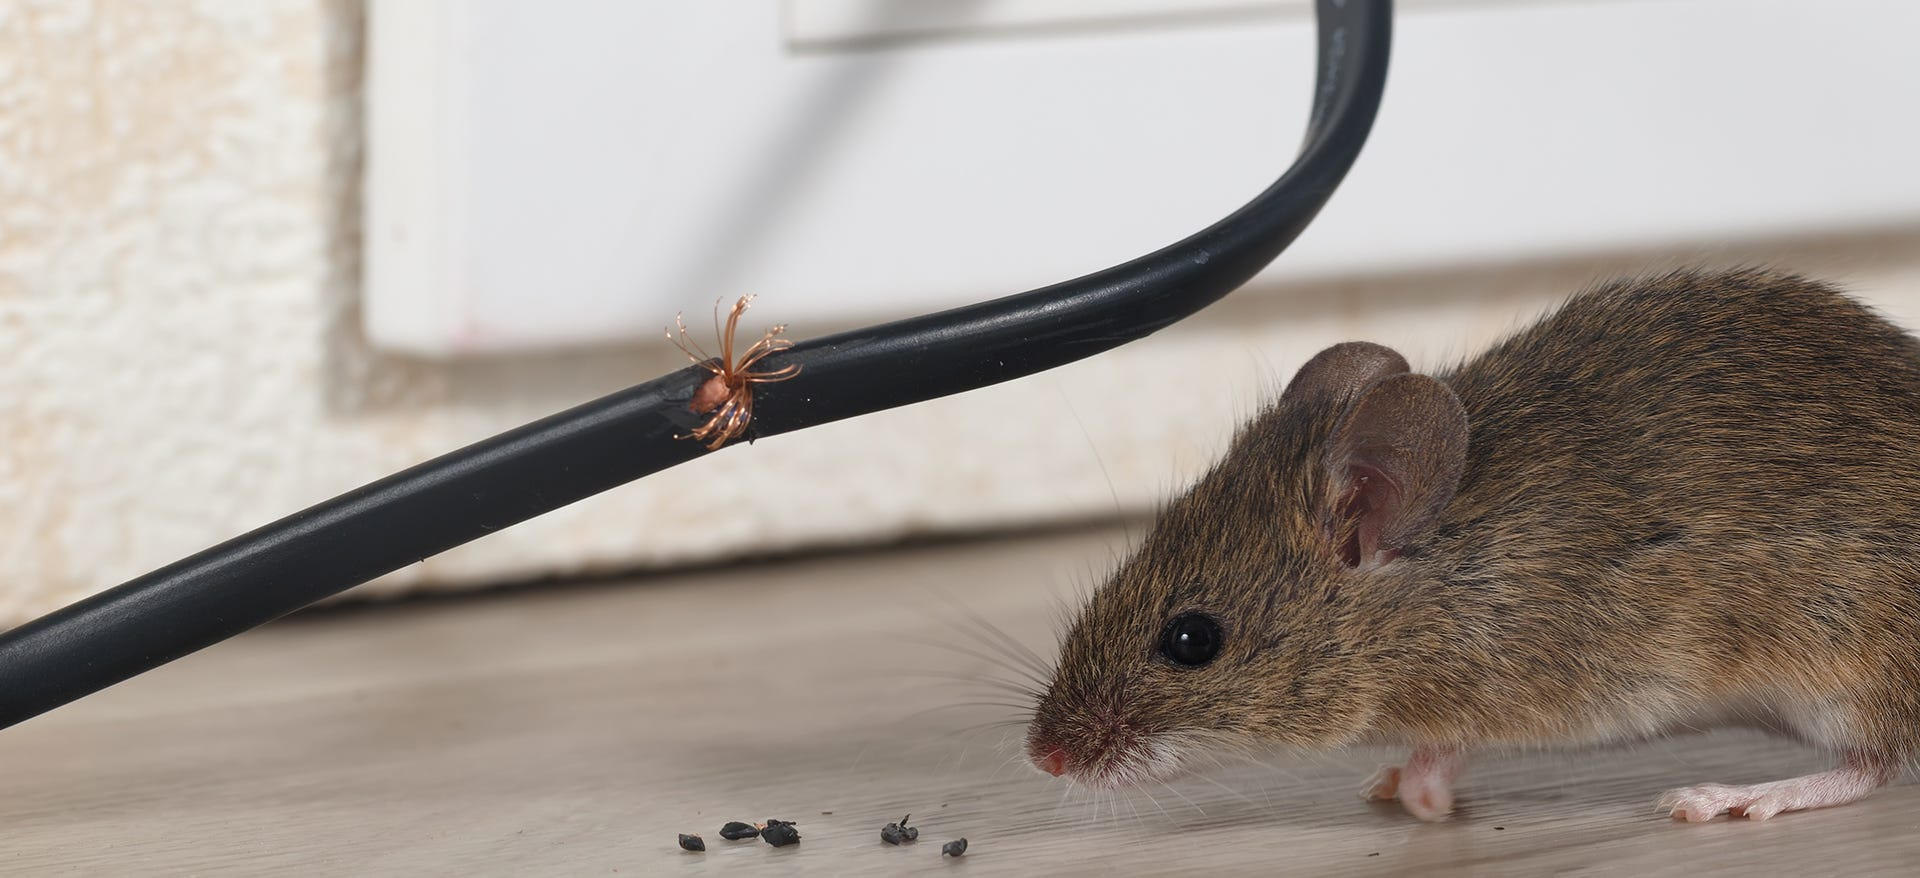 mice chewed wire